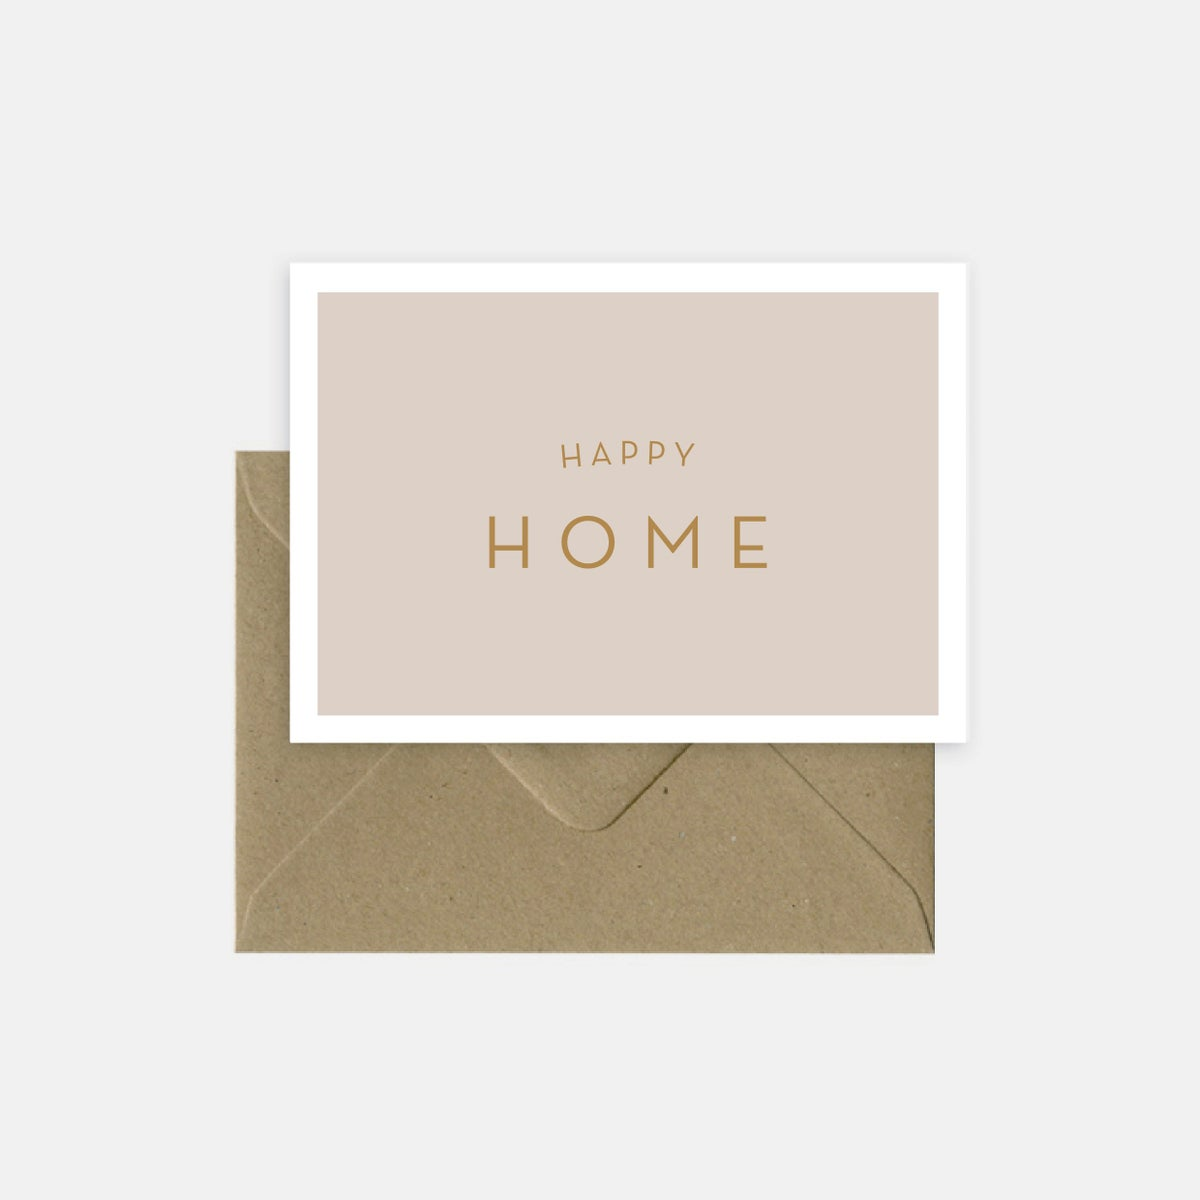 Image of Happy Home